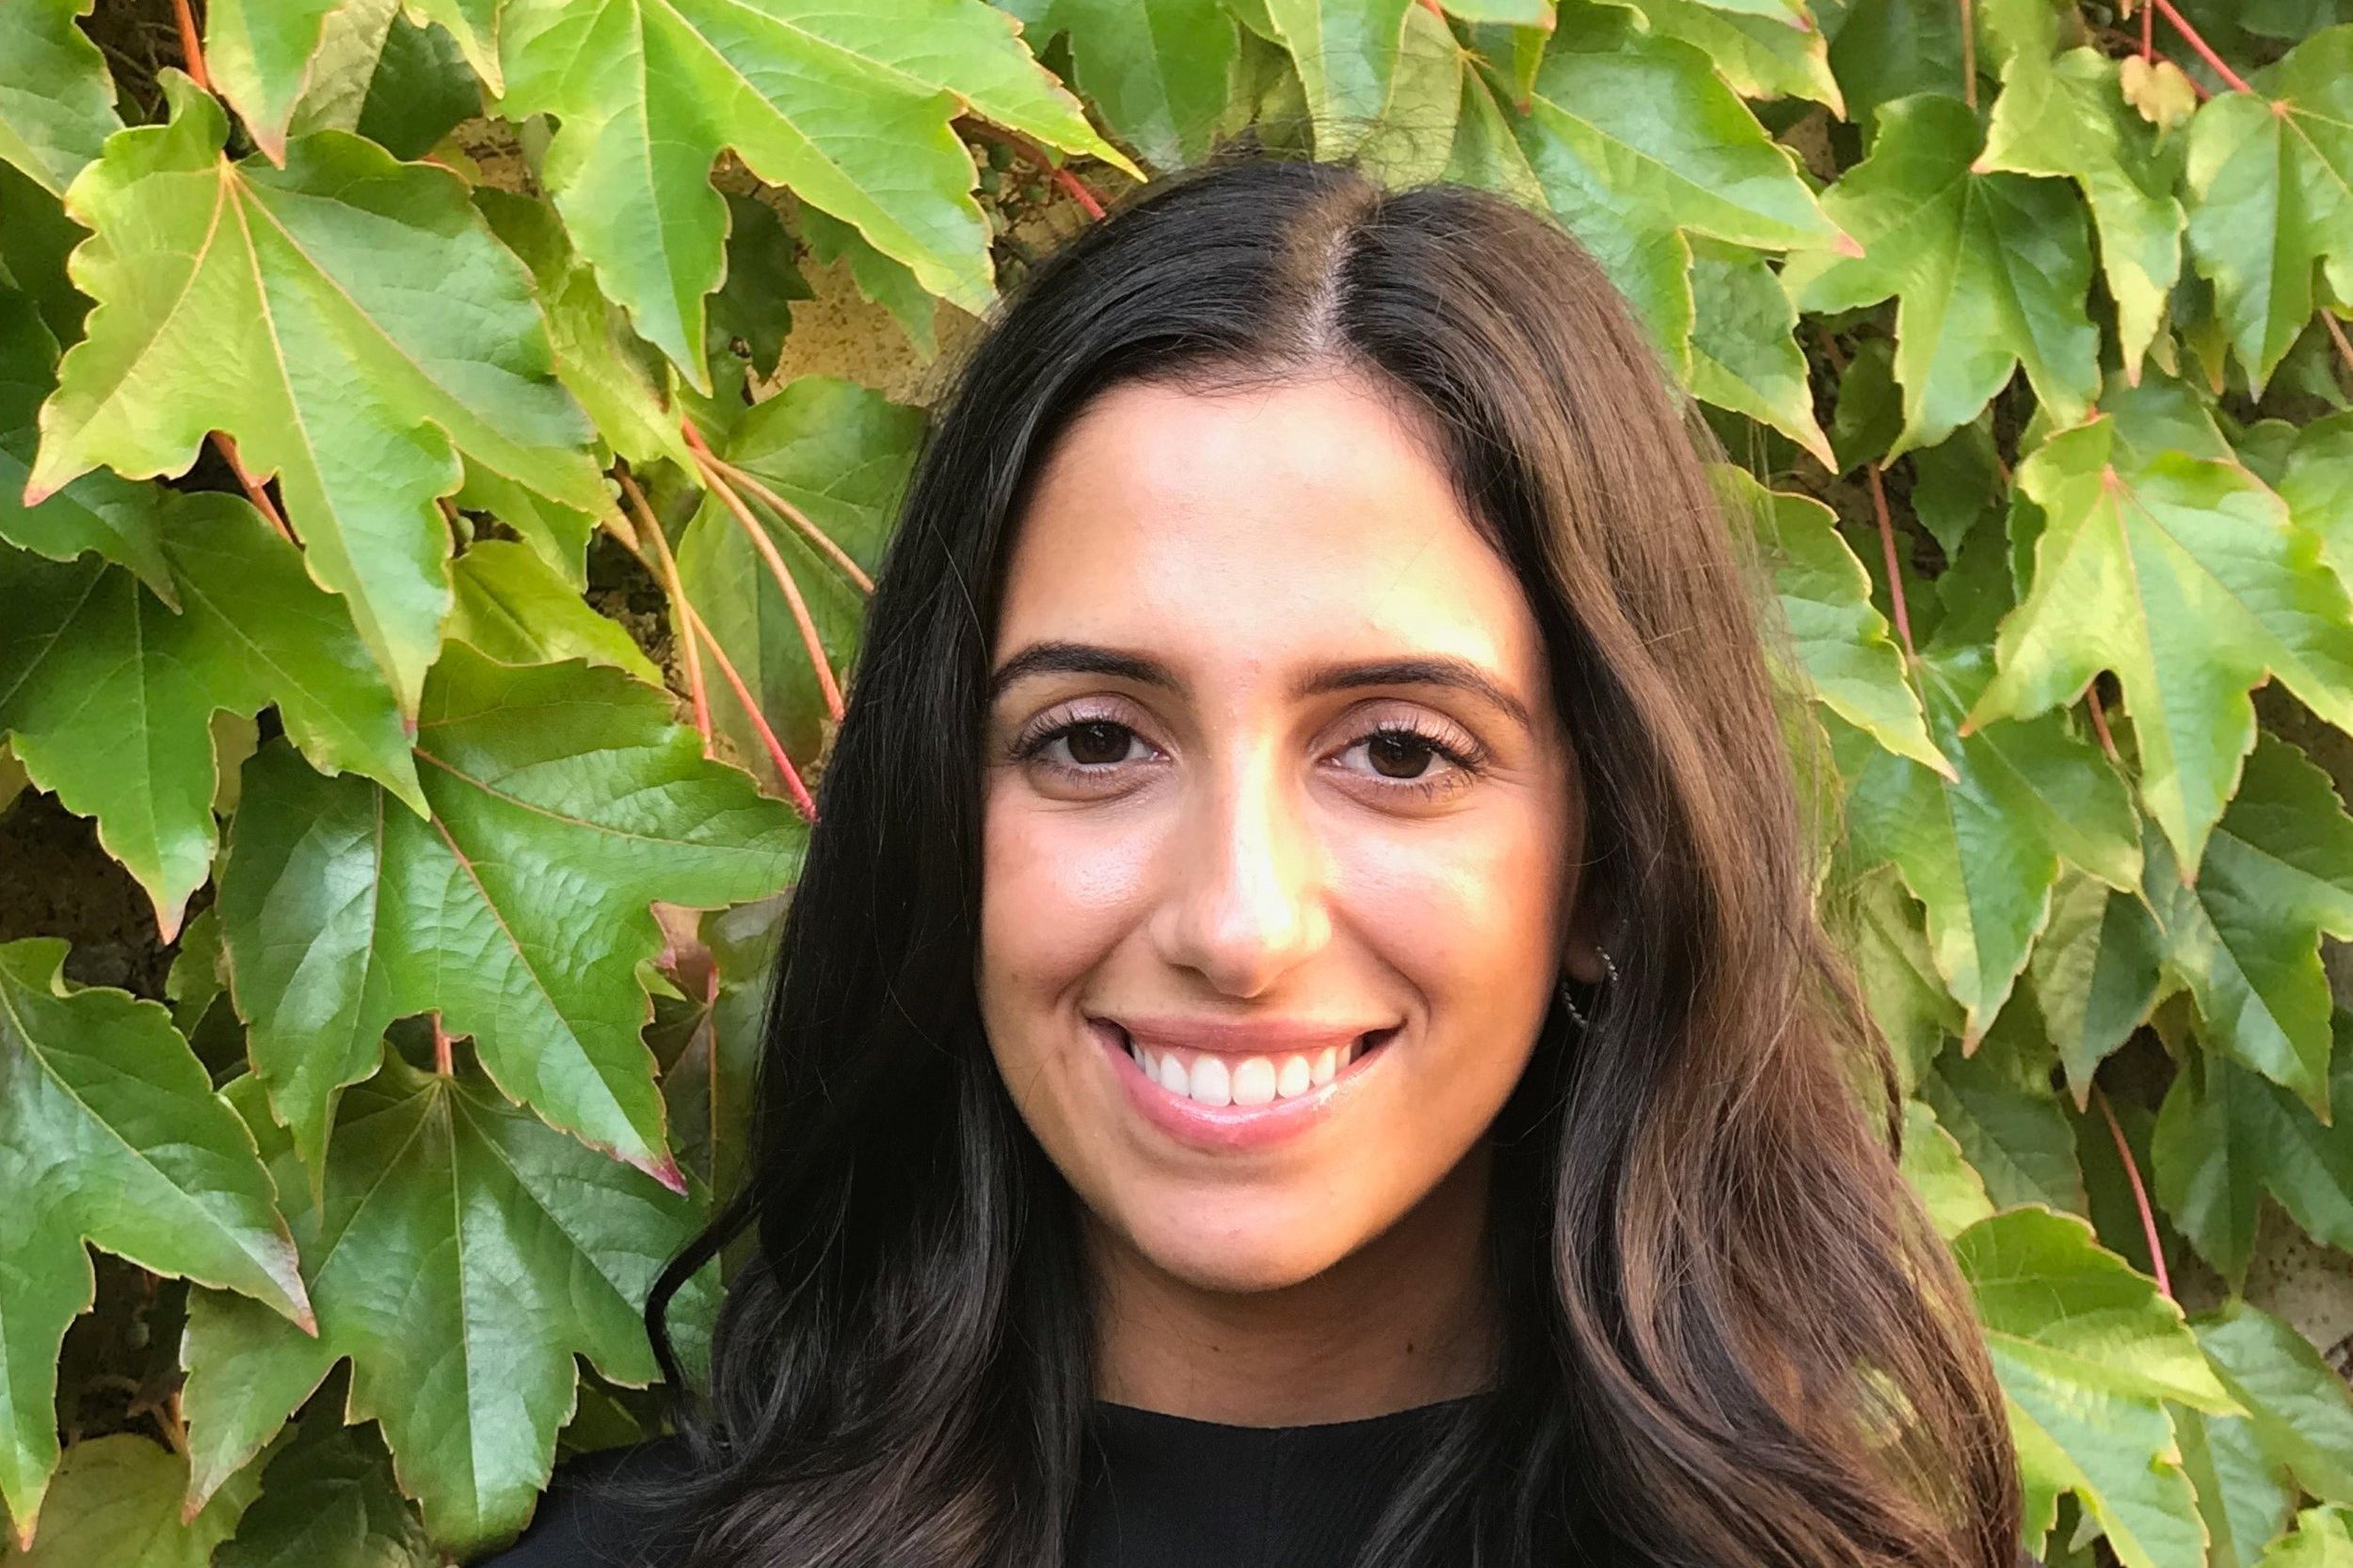 Alexa Beraldo - Alexa is currently undertaking the LPC at the BPP Law School in London. She assists on a variety of residential property, commercial property and private client matters.Alexa has had varied legal experiences both in London (UK) and Ontario (Canada). She read Commerce at McMaster University in Ontario (2015) and Law at University of London (2018). She